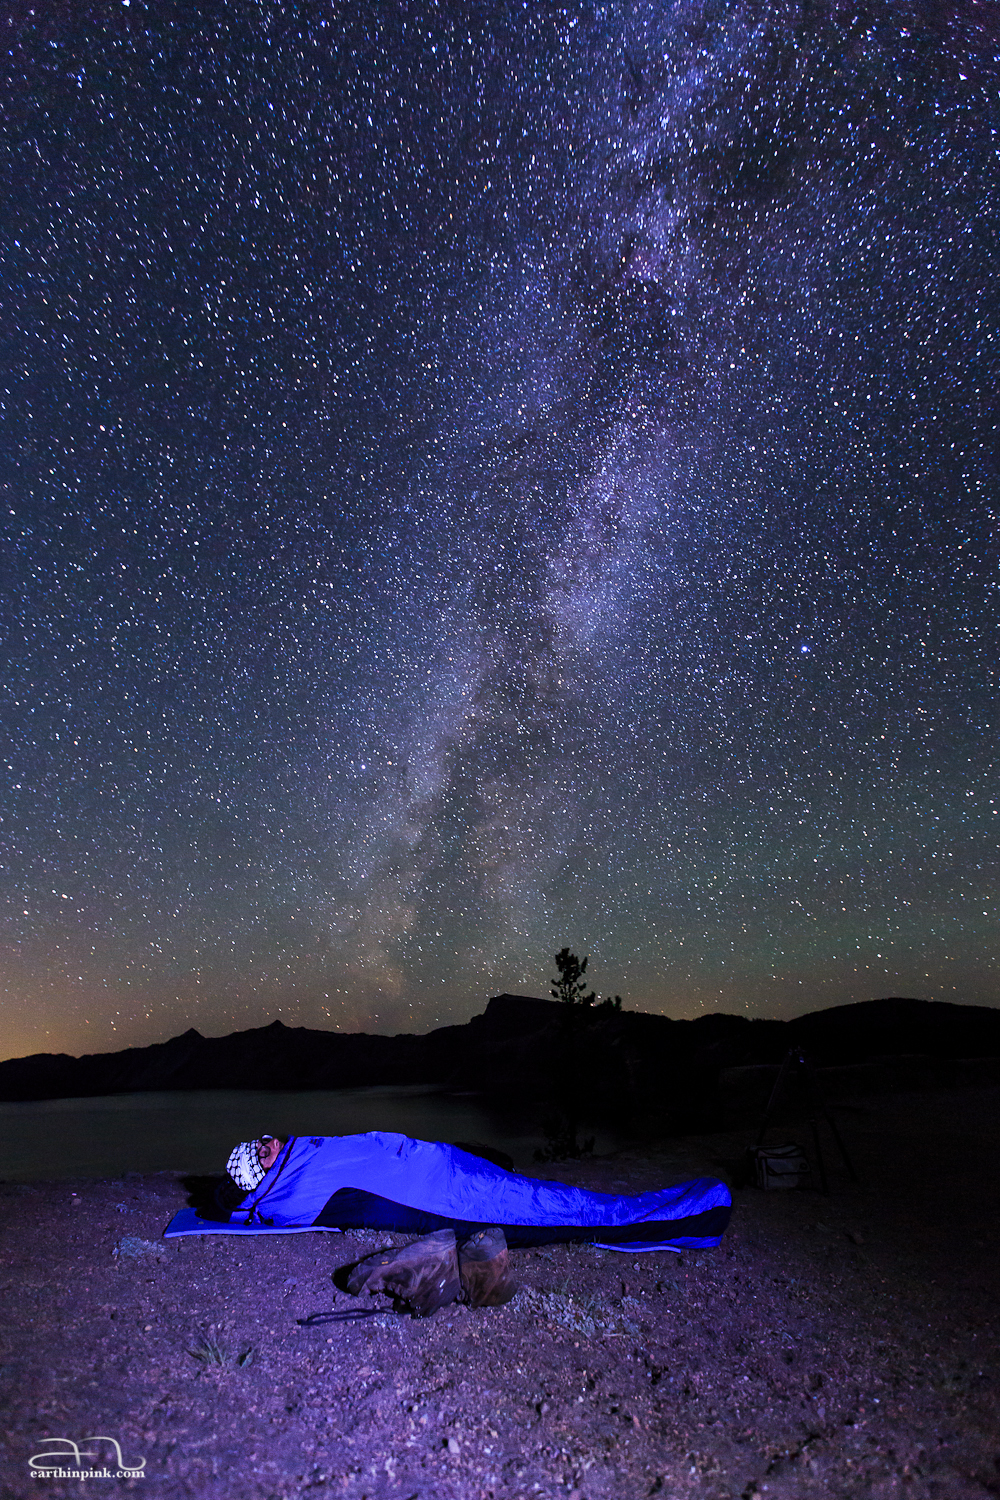 Fellow astrophotographer Karim Iliya watching the stars from the warmth of his sleeping bag after boldly leaving his rather expensive camera out in the woods to shoot a time lapse.